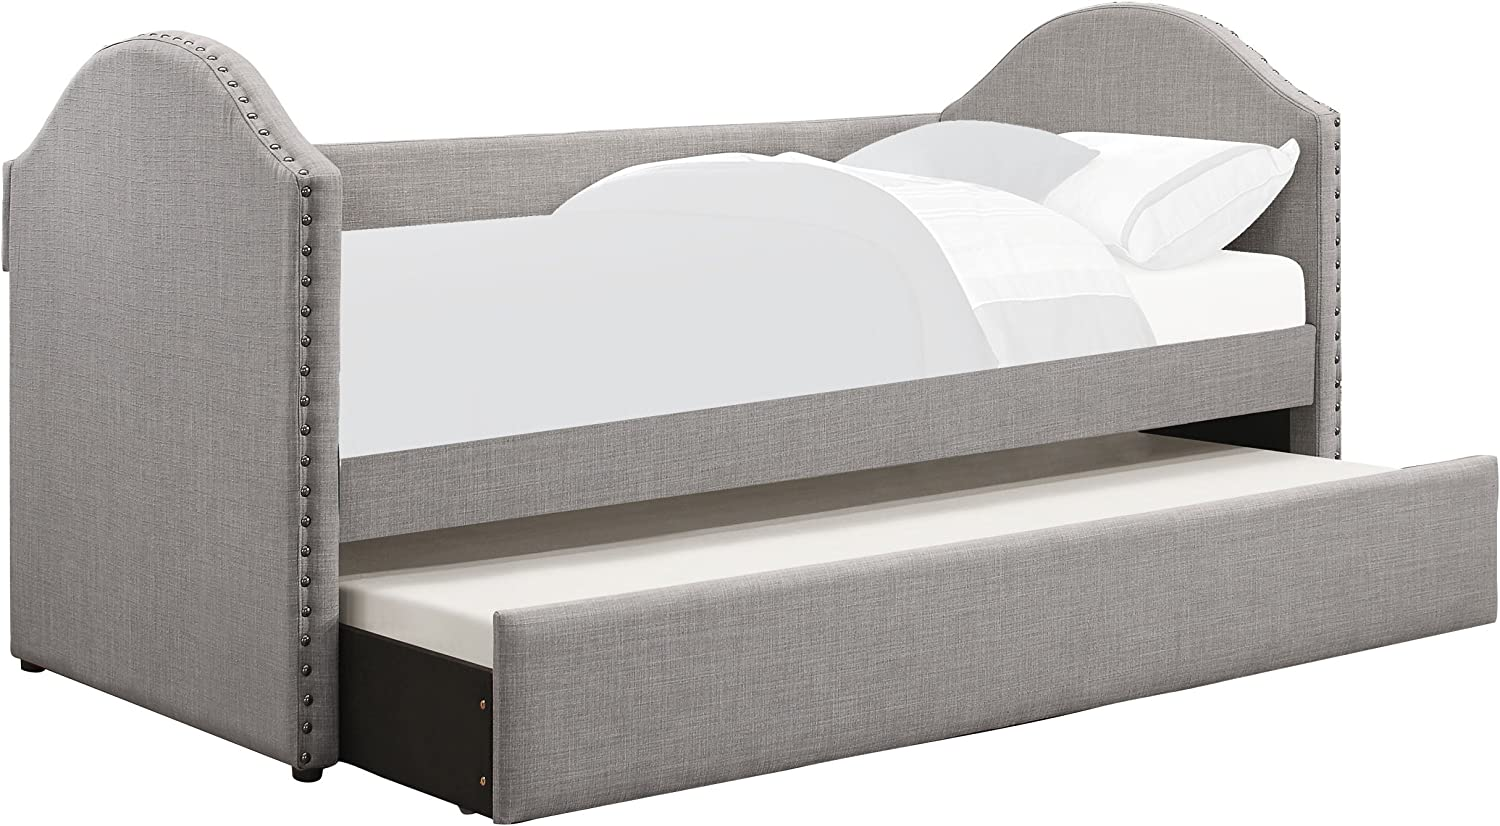 Homelegance Tarpen Fabric Upholstered Daybed with Trundle, Twin, Gray